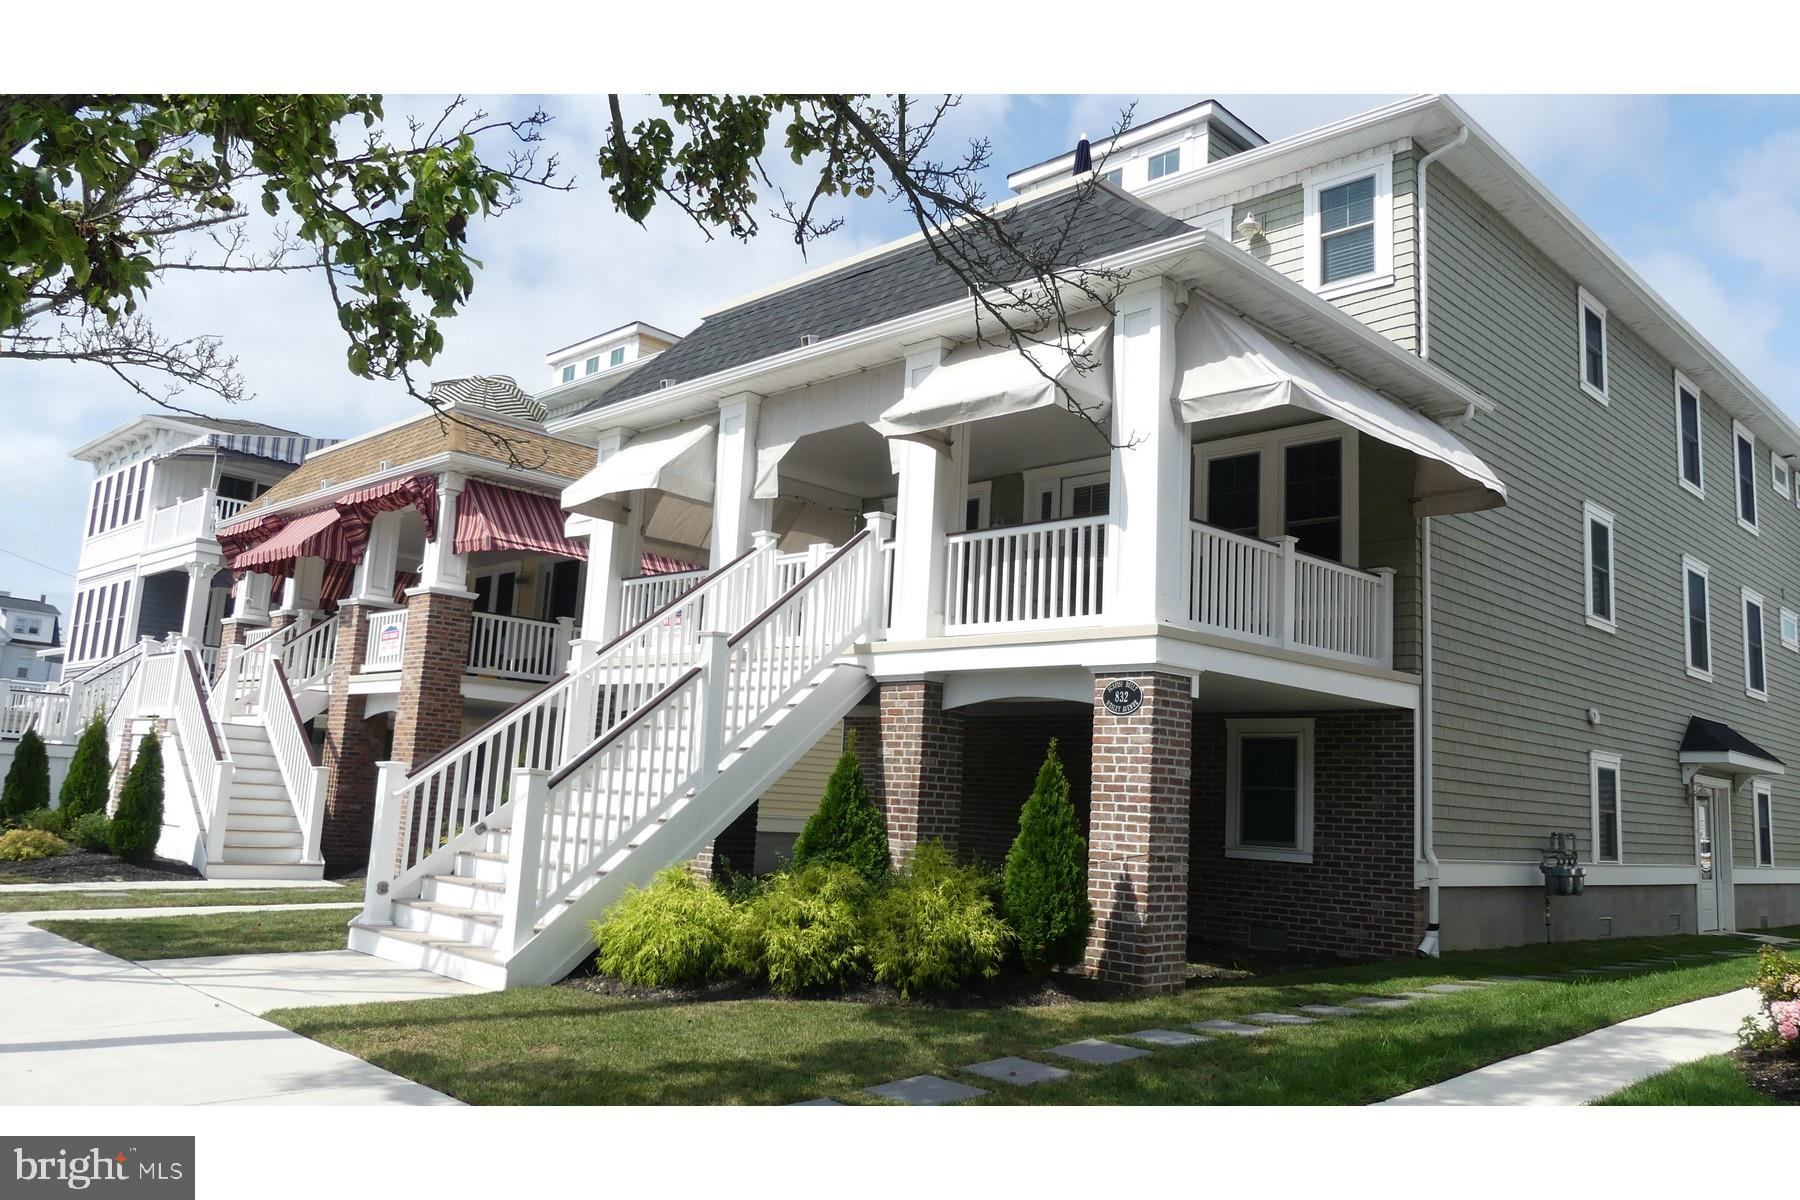 834 WESLEY AVENUE 2ND FLOOR, OCEAN CITY, NJ 08226